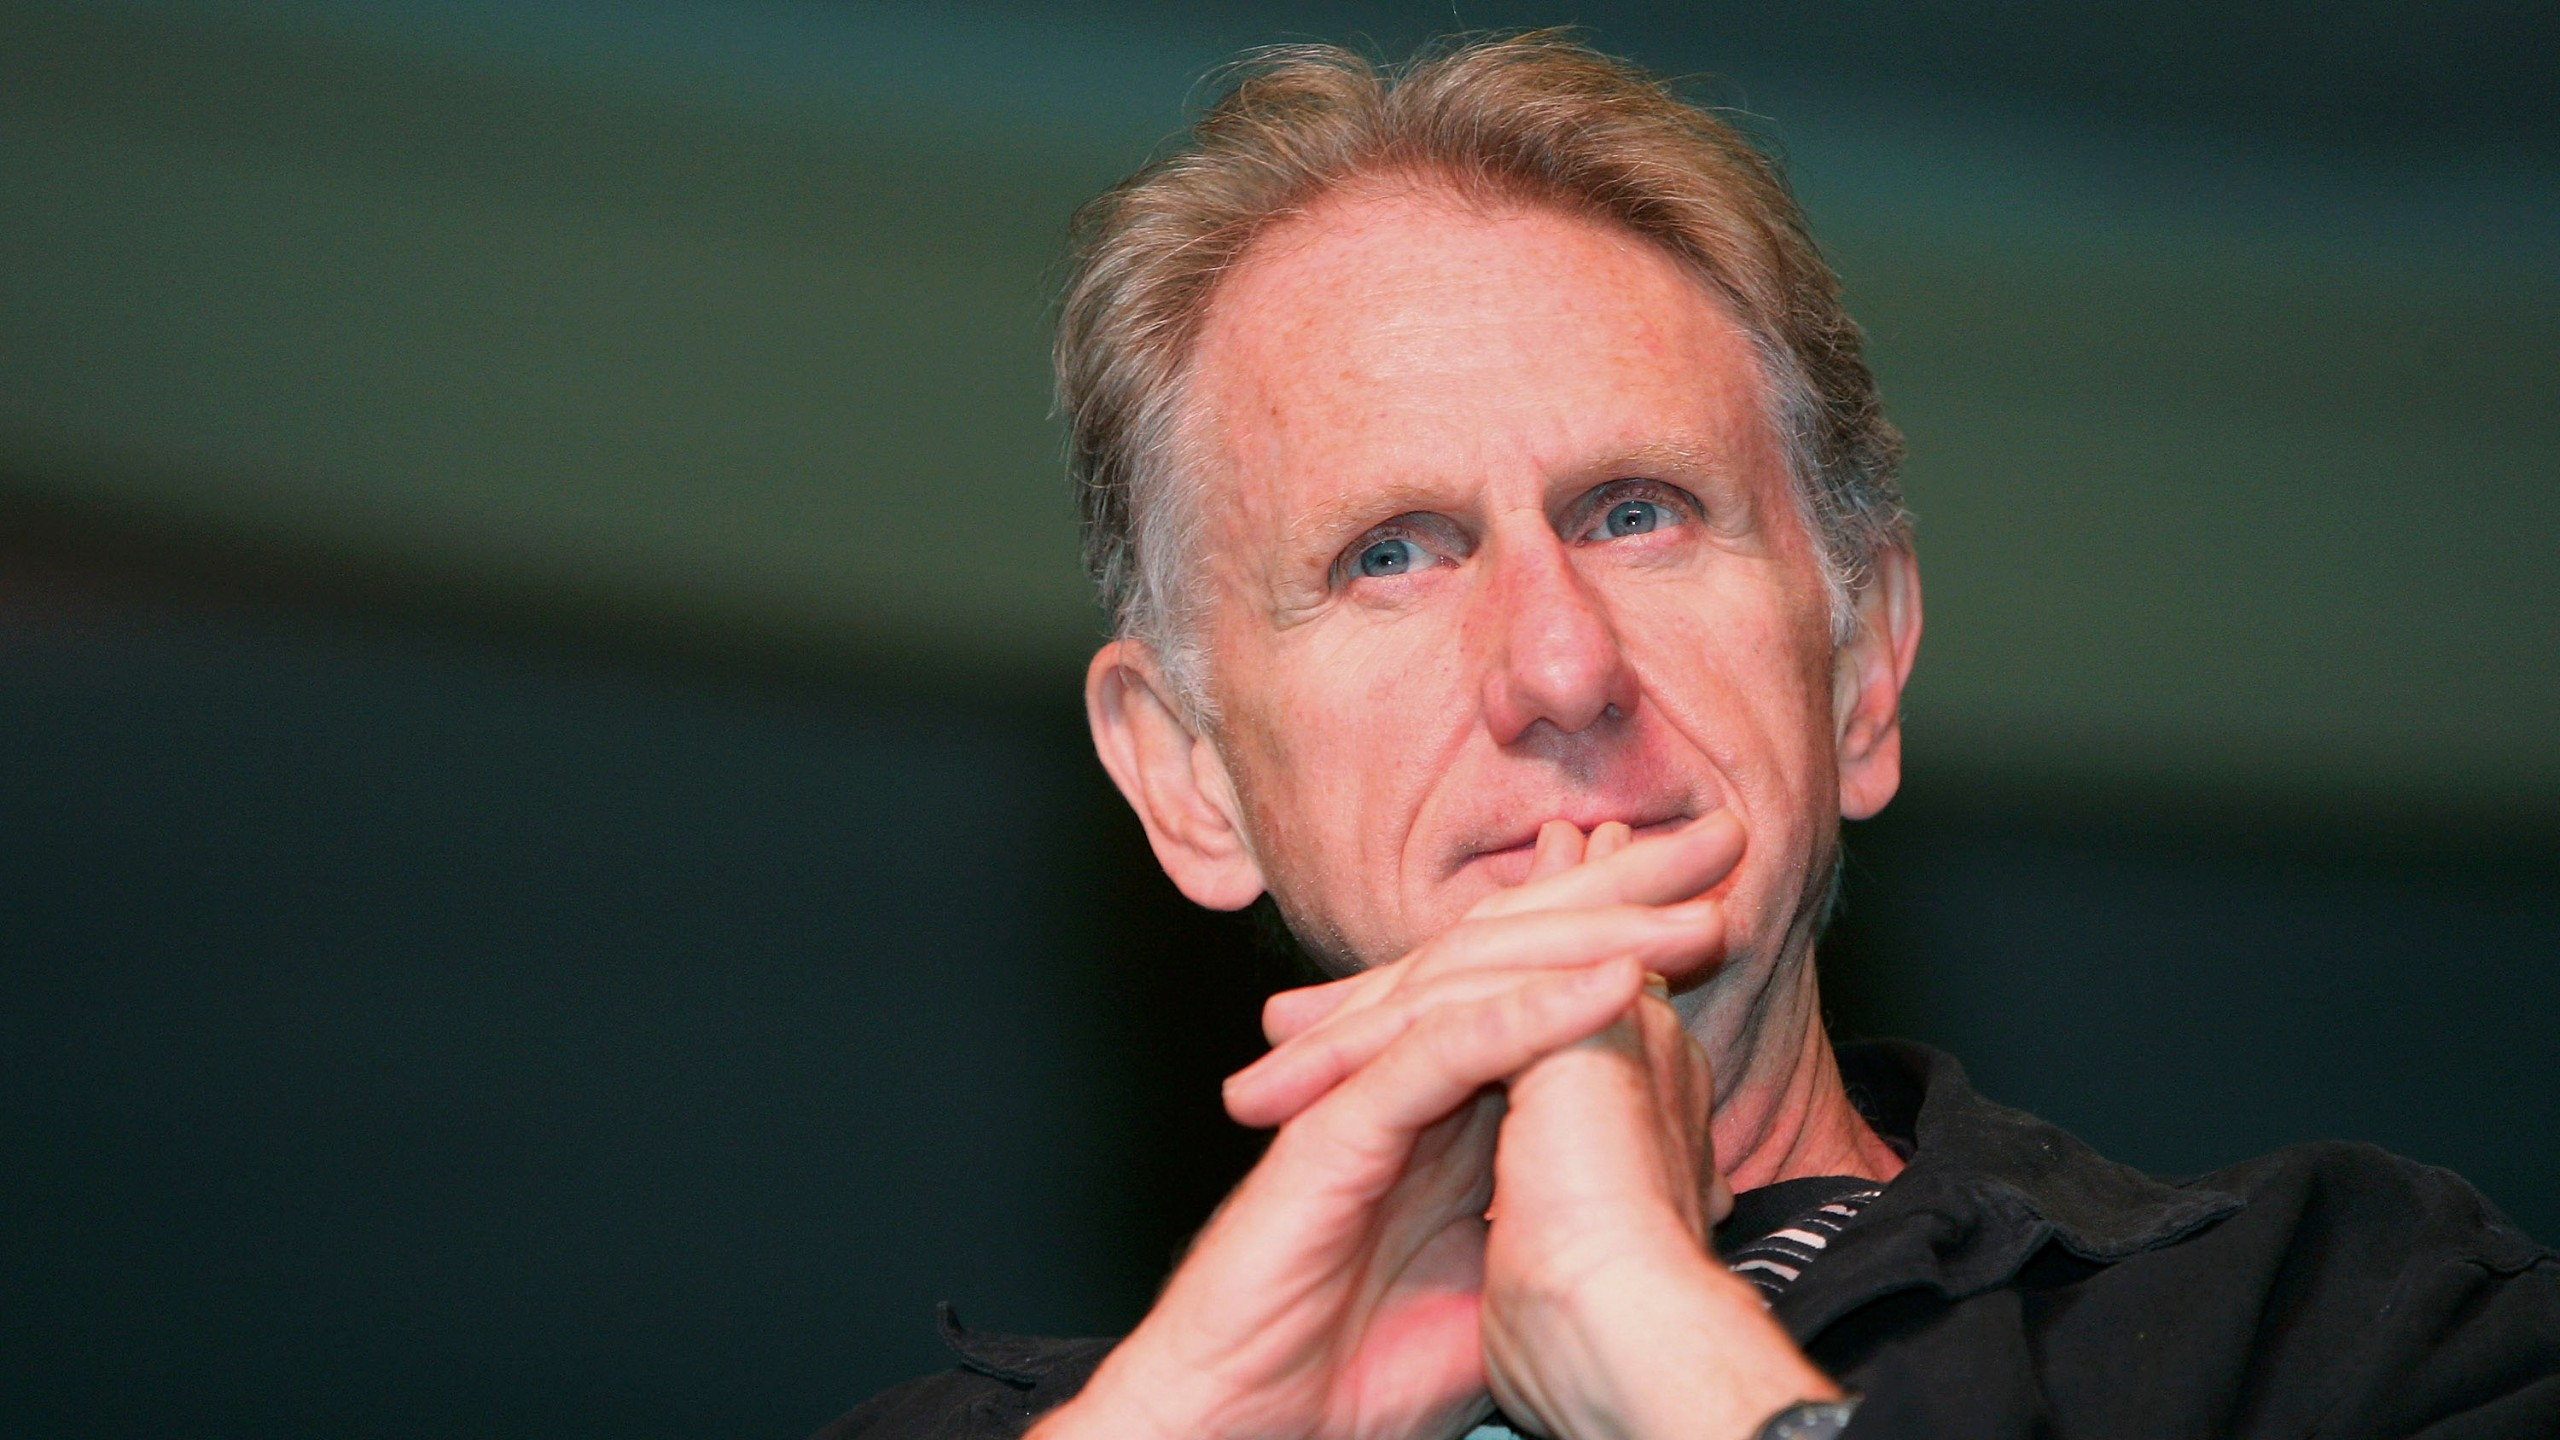 Actor Rene Auberjonois appears at the Star Trek convention at the Las Vegas Hilton on Aug. 14, 2005, in Las Vegas, Nevada. (Credit: Ethan Miller/Getty Images)